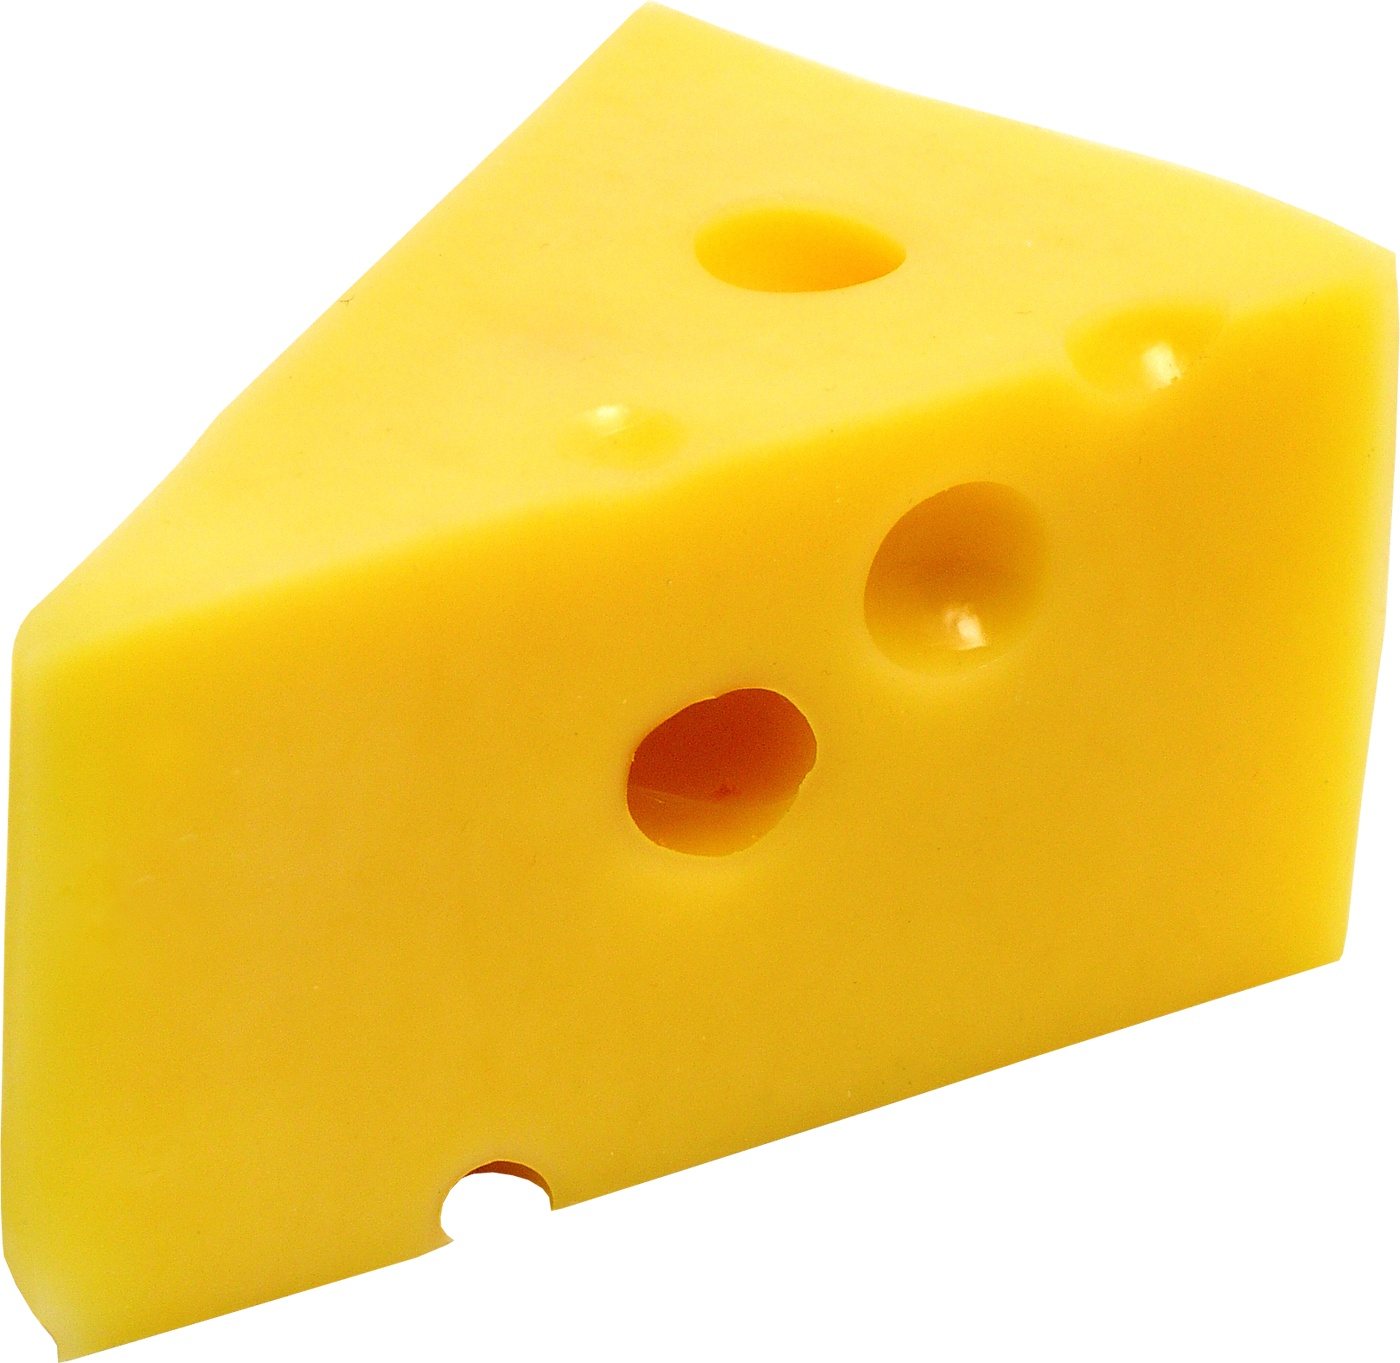 Cheese clipart the cliparts